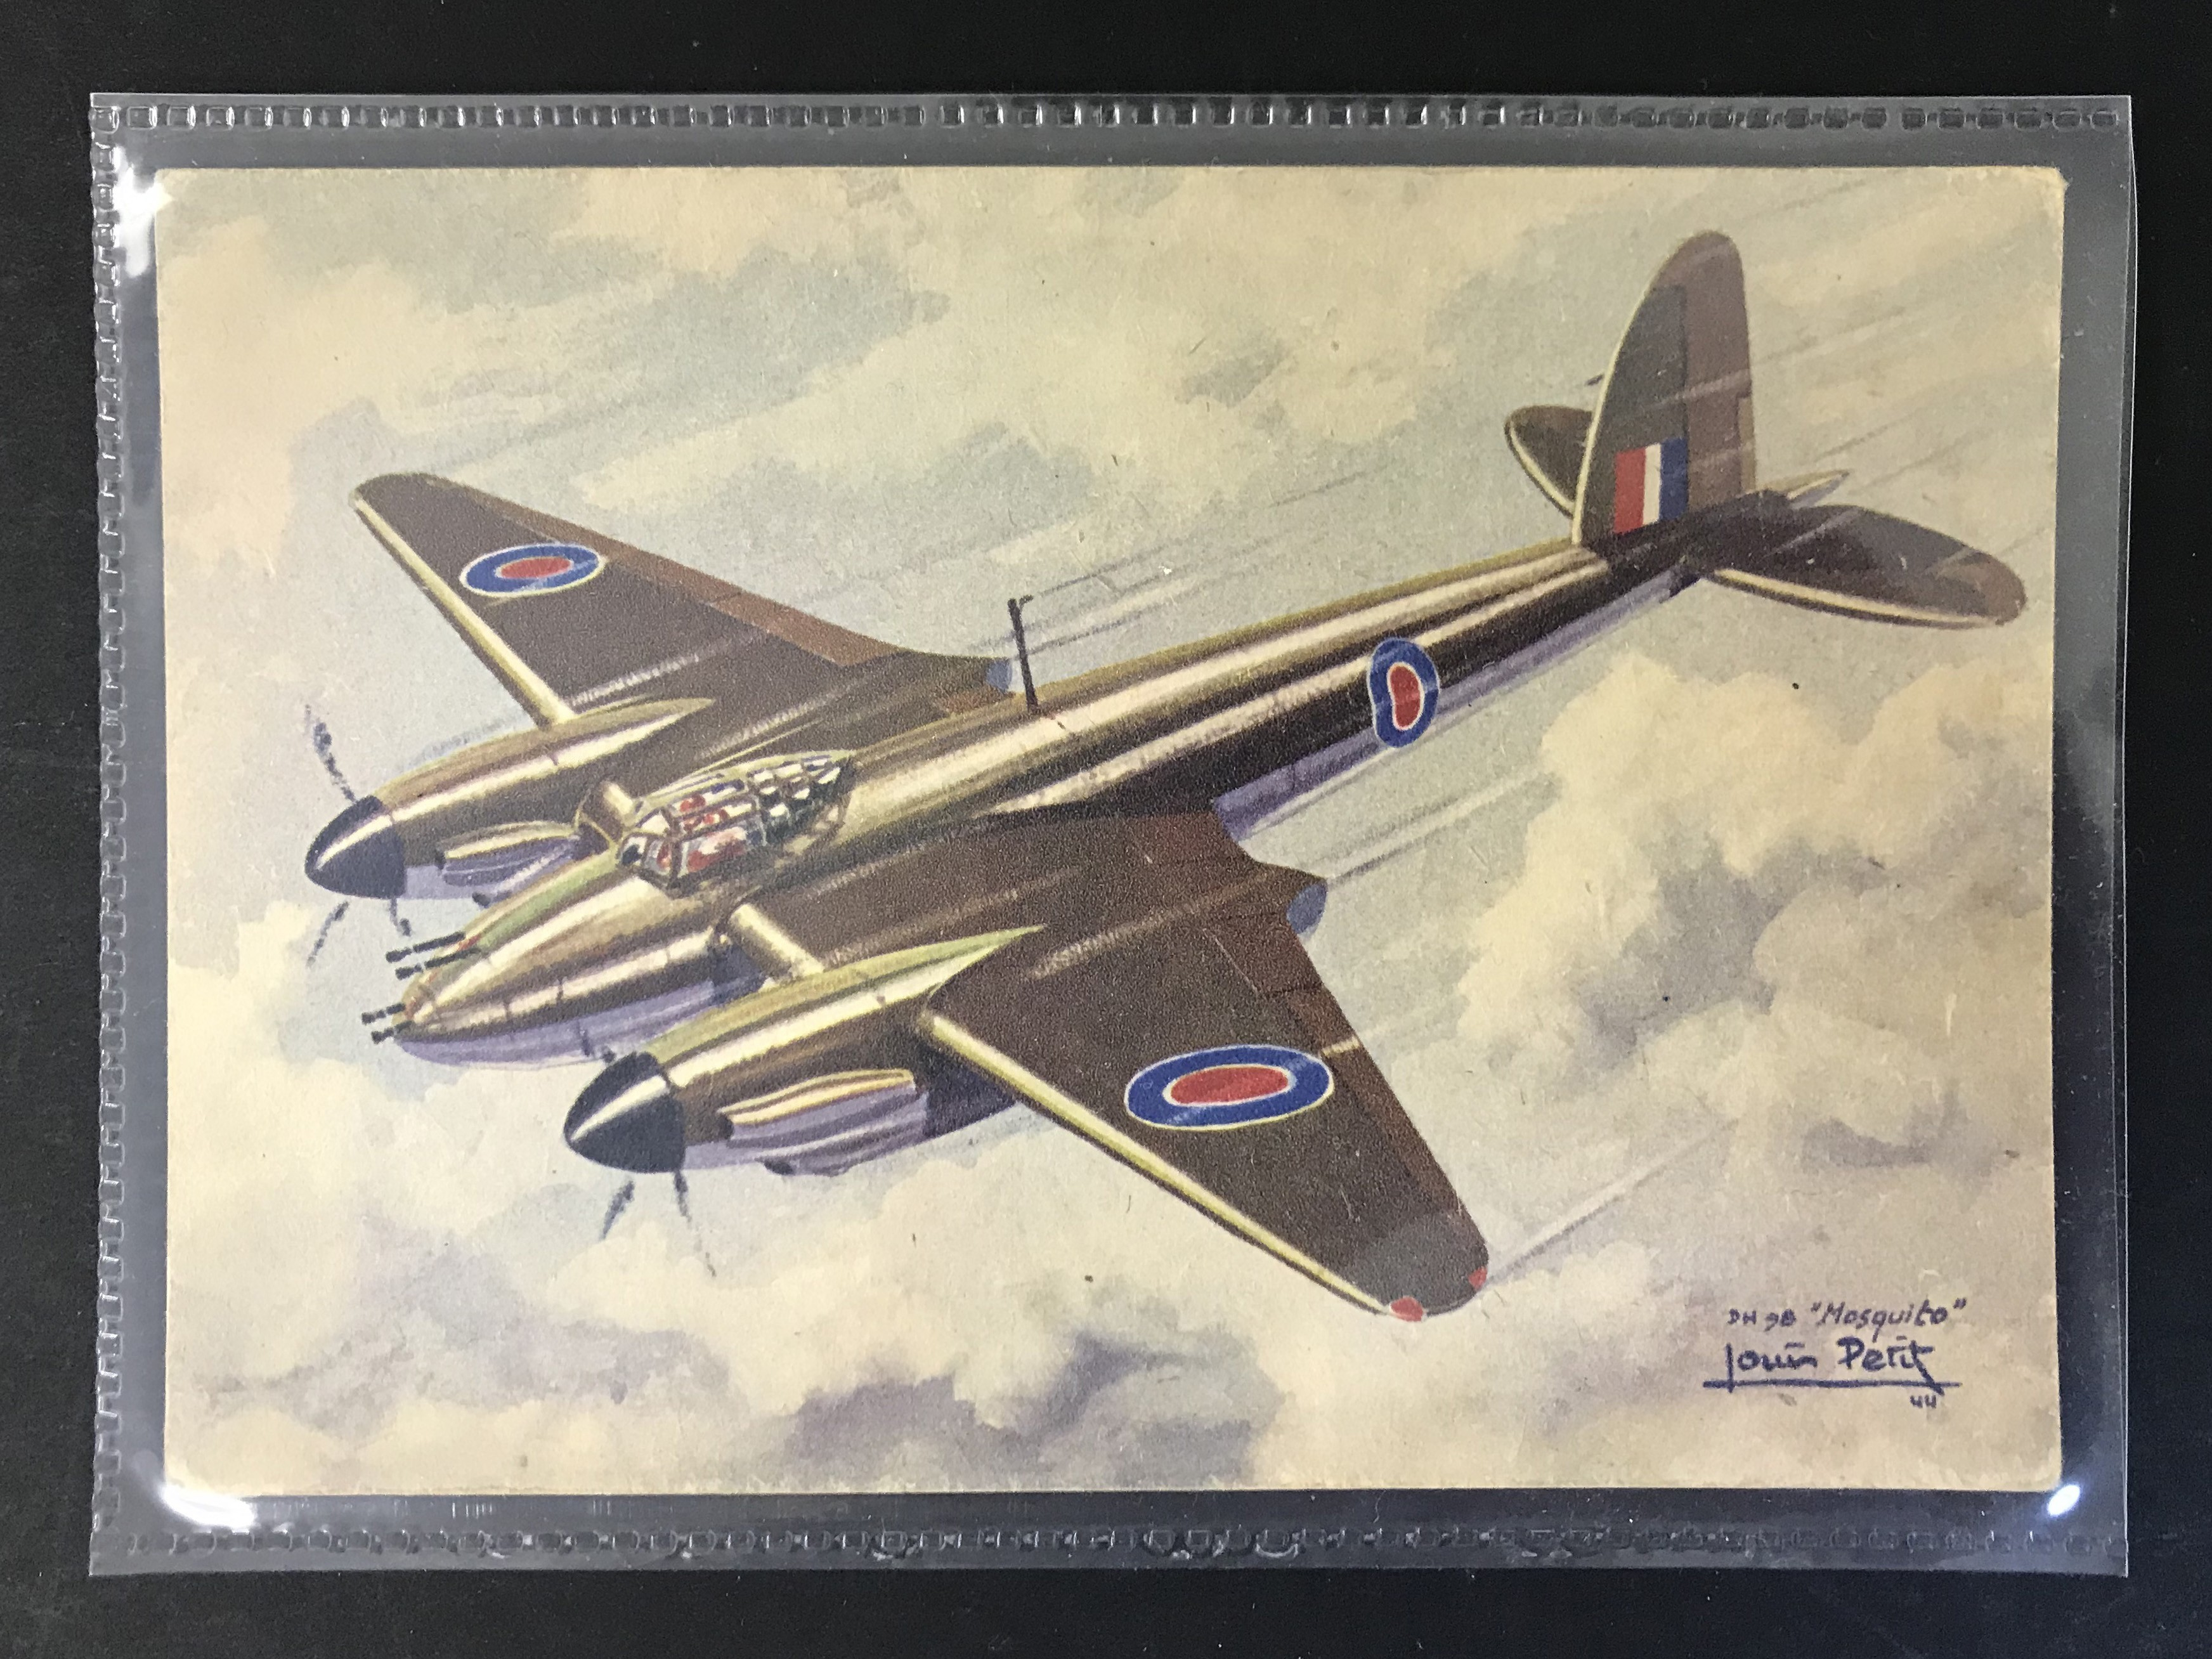 GROUP OF TWELVE FRENCH PLANES RELATED POSTCARDS - VARIOUS SERIES - Image 8 of 14